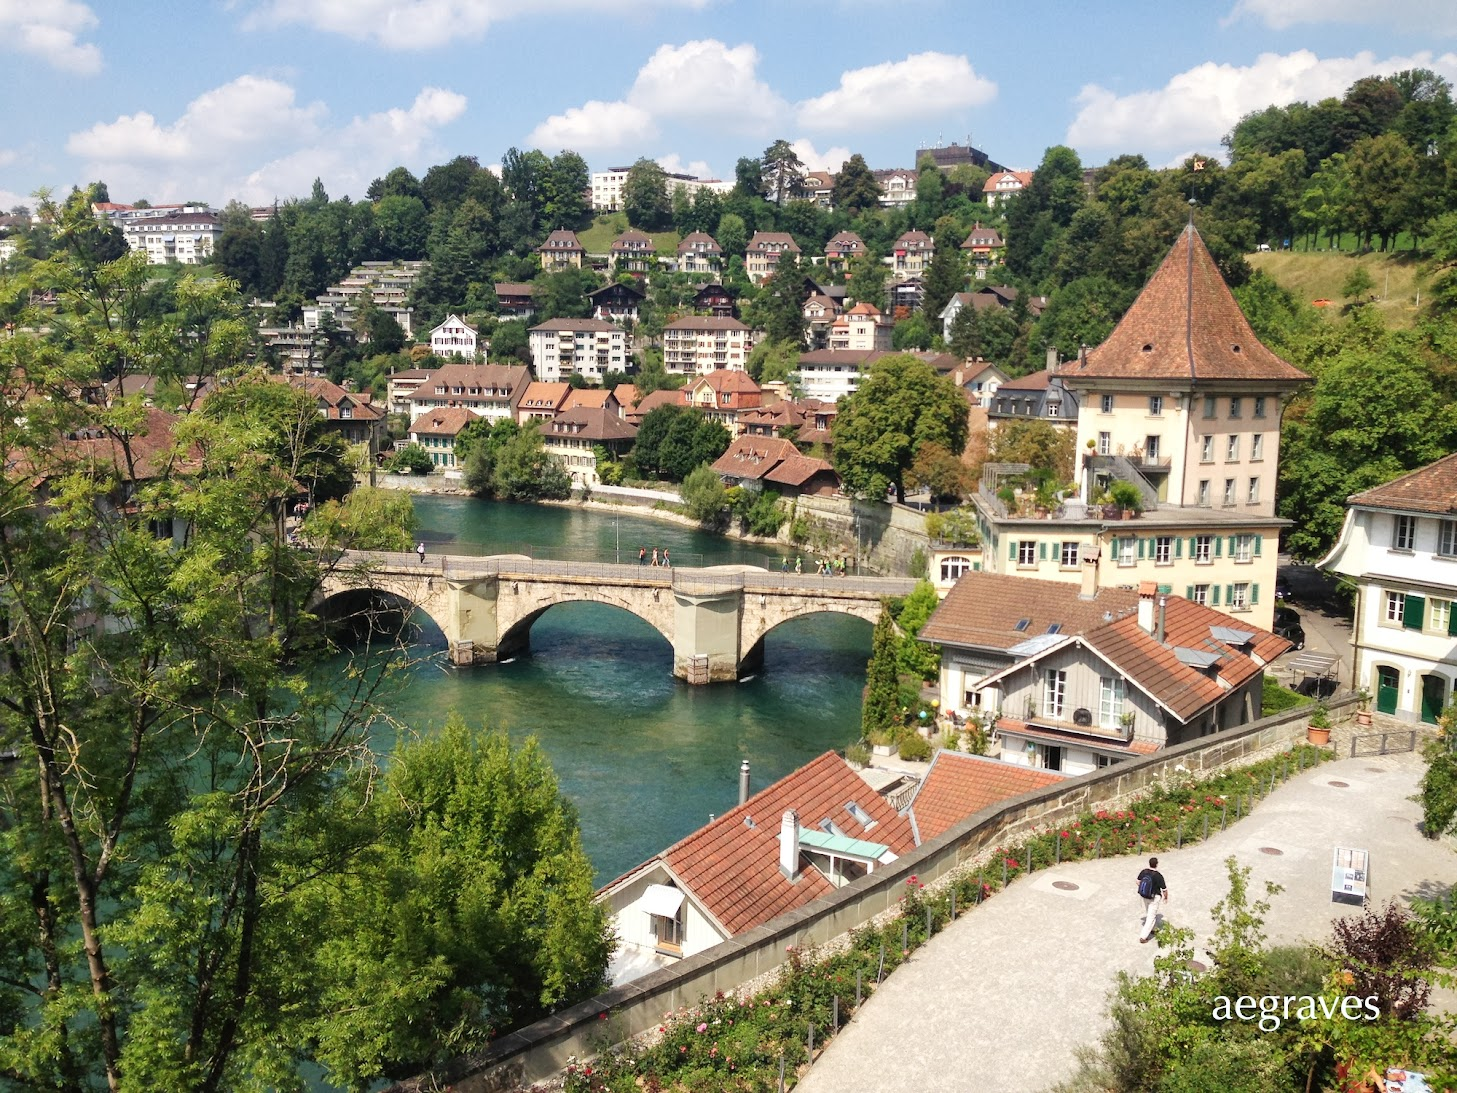 image of the Aare River in Bern, Switzerland by A.E. Graves